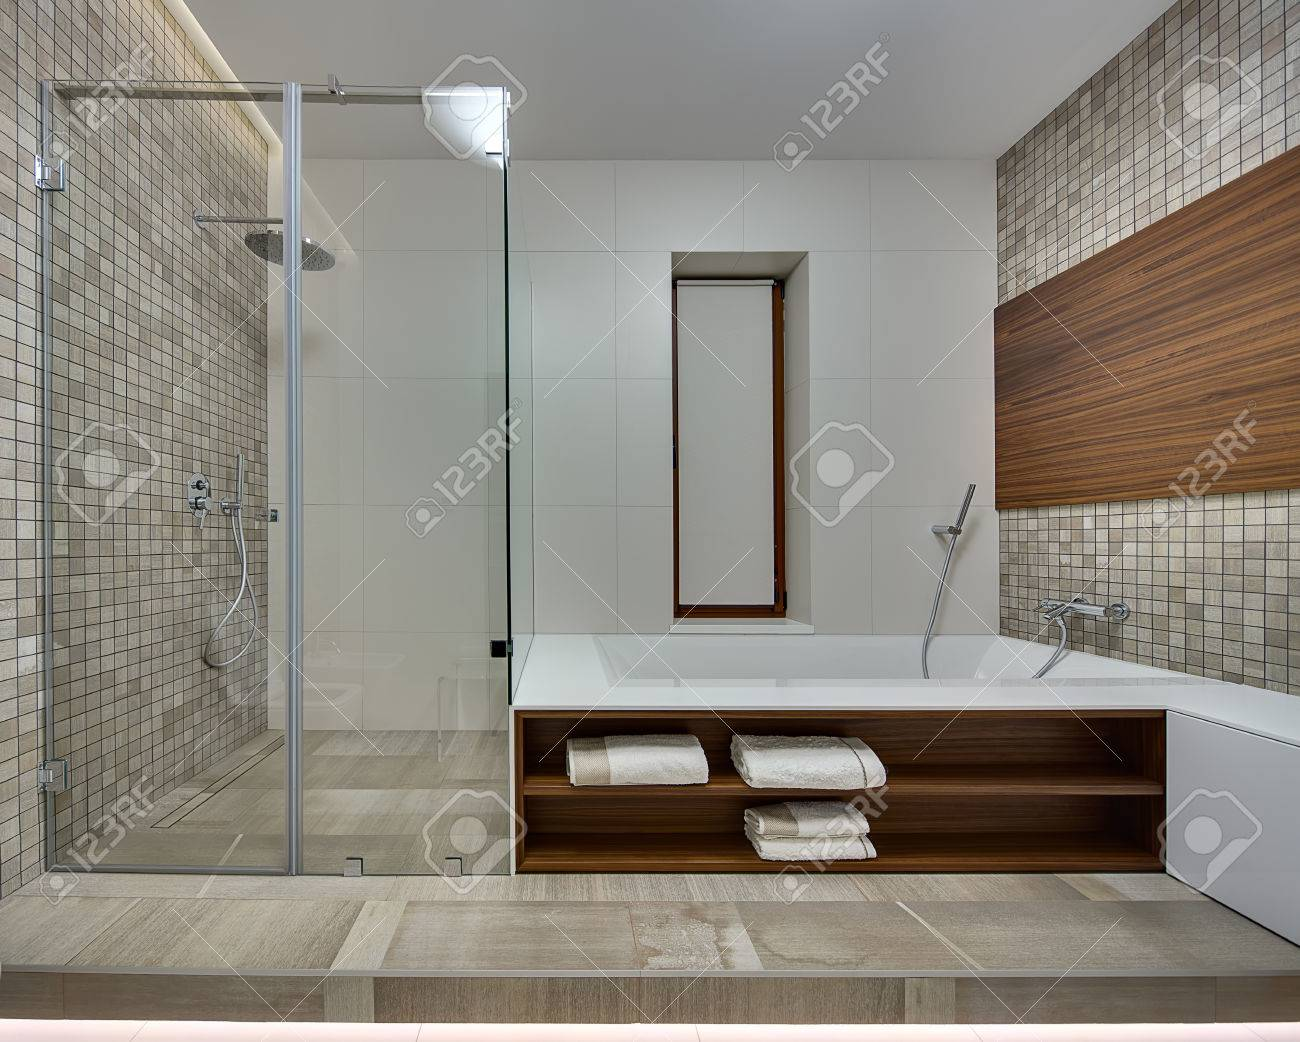 Bathroom In A Modern Style With Light Tiles On The Back Wall ...